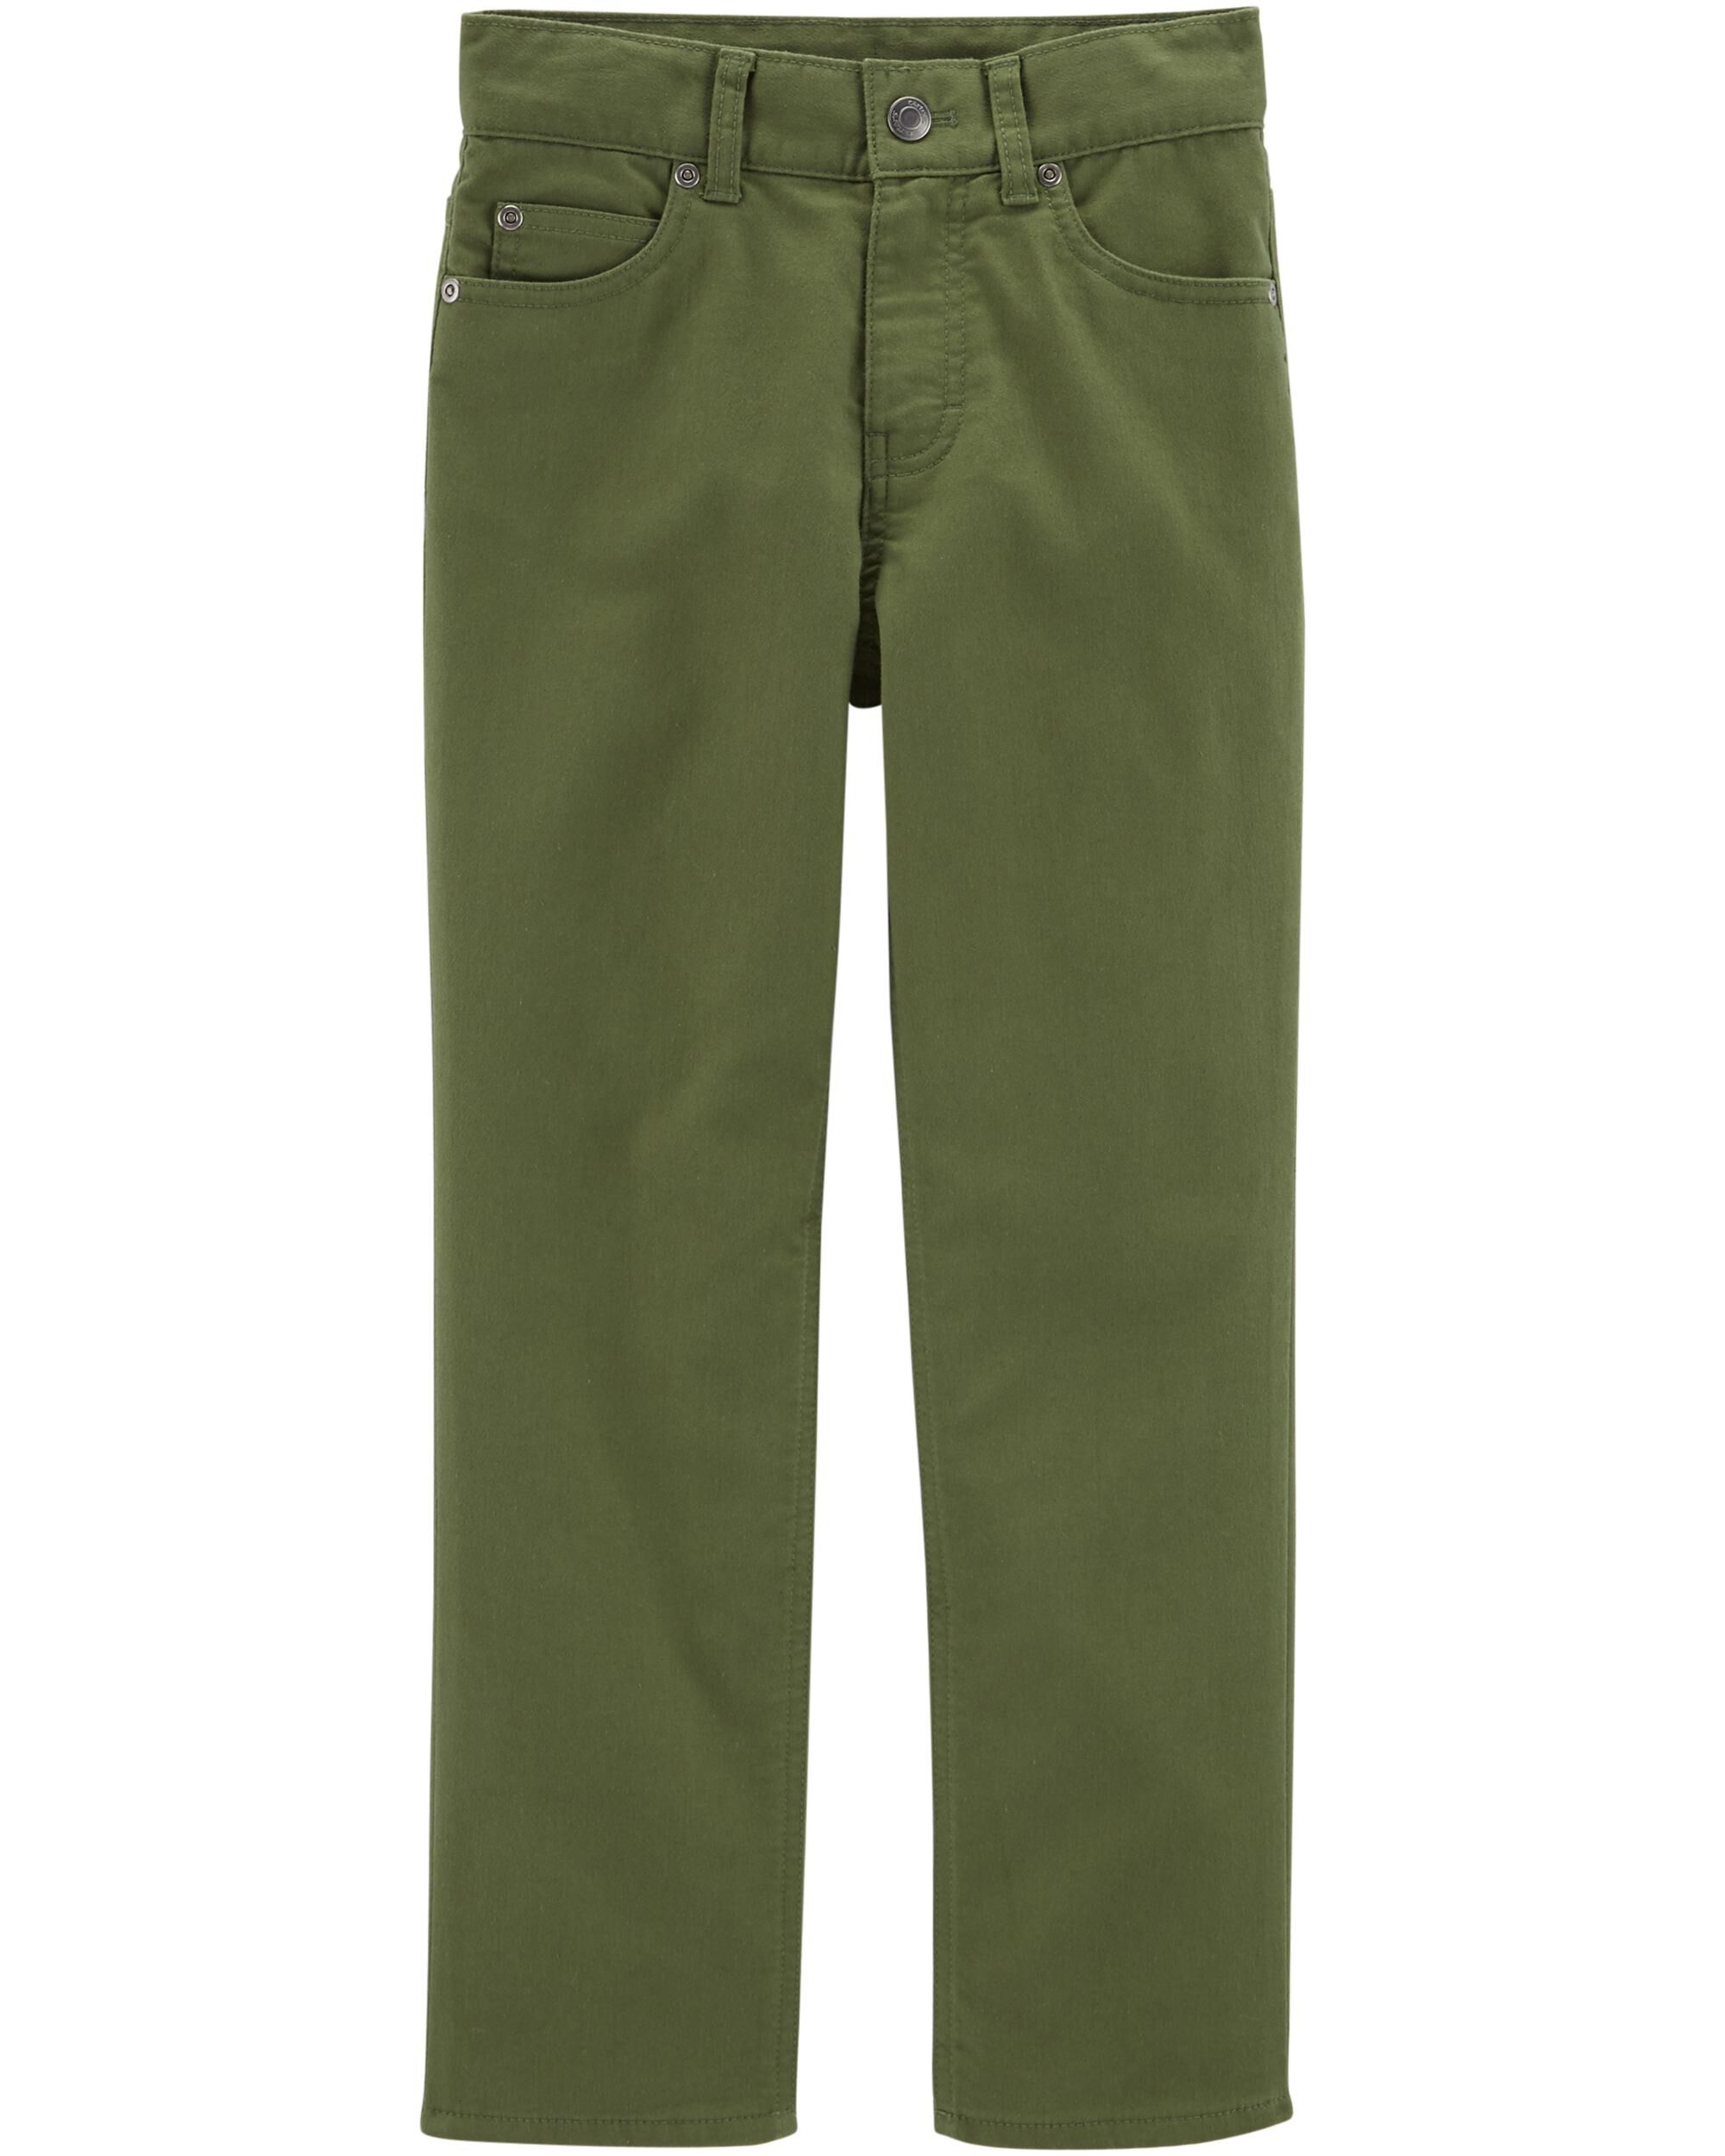 *Clearance*  Straight Fit High Stretch Pants